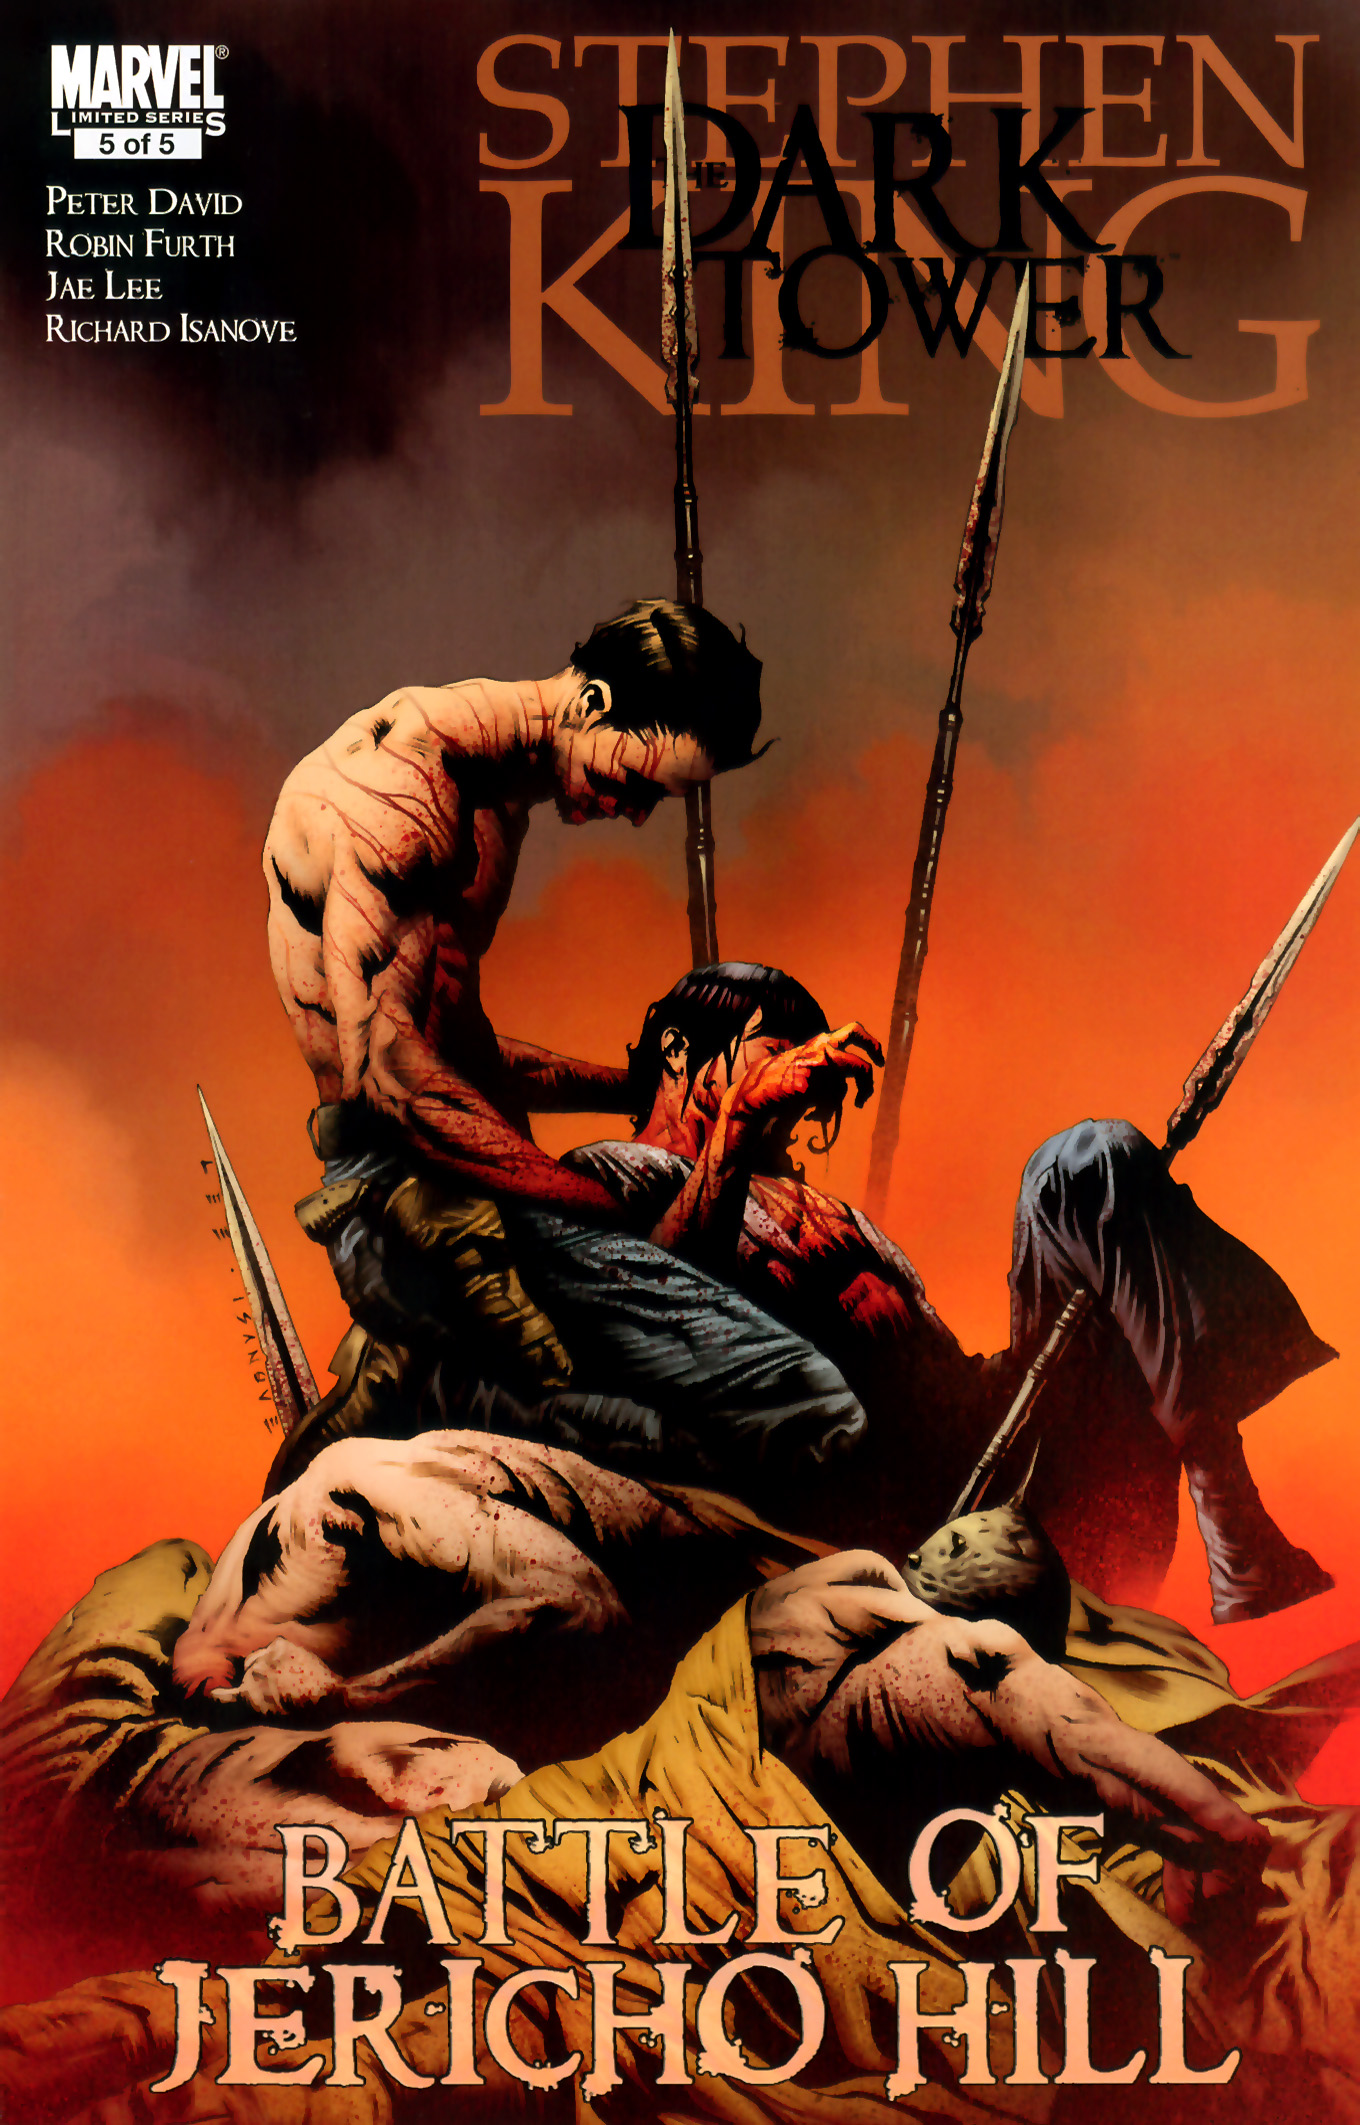 The Dark Tower: The Battle of Jericho Hill n.5